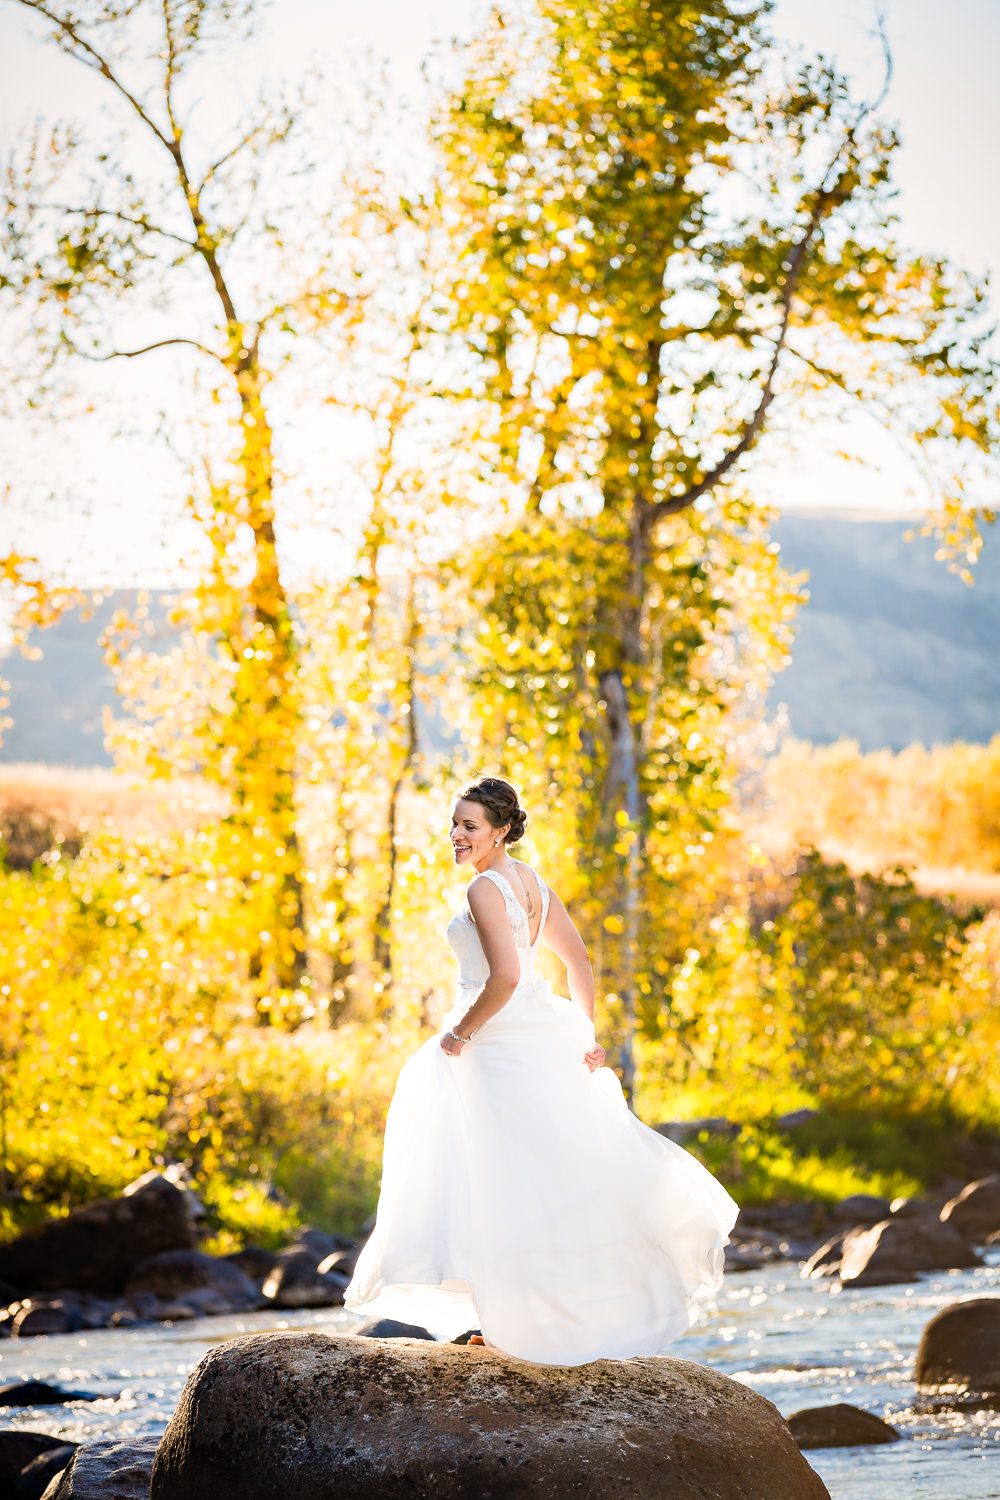 absaroka-beartooth-wilderness-montana-wedding-reception-bride-crosses-river.jpg